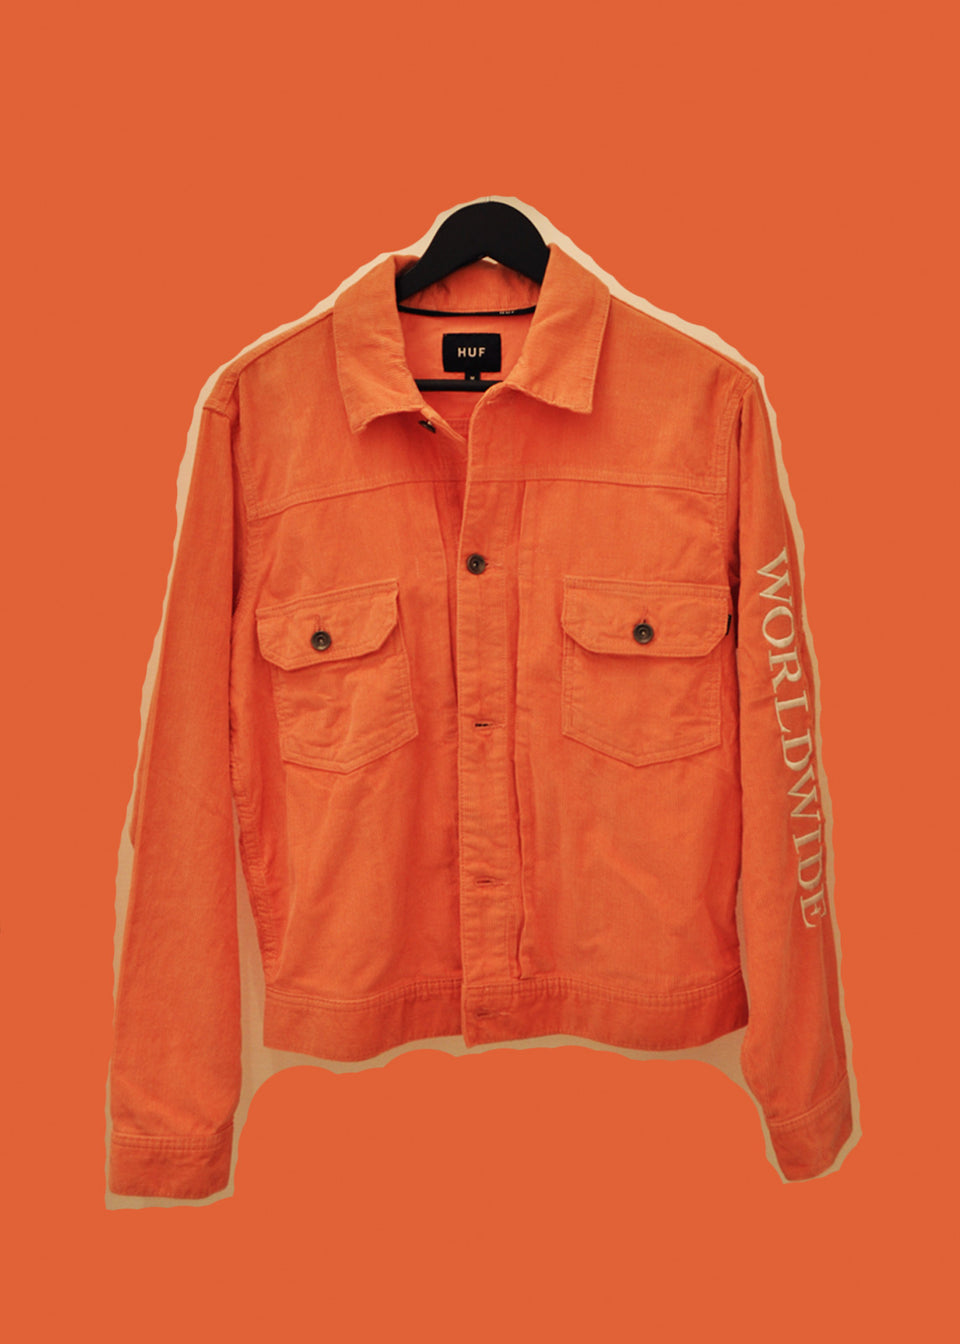 HUF • Veste Velours Côtelé Orange